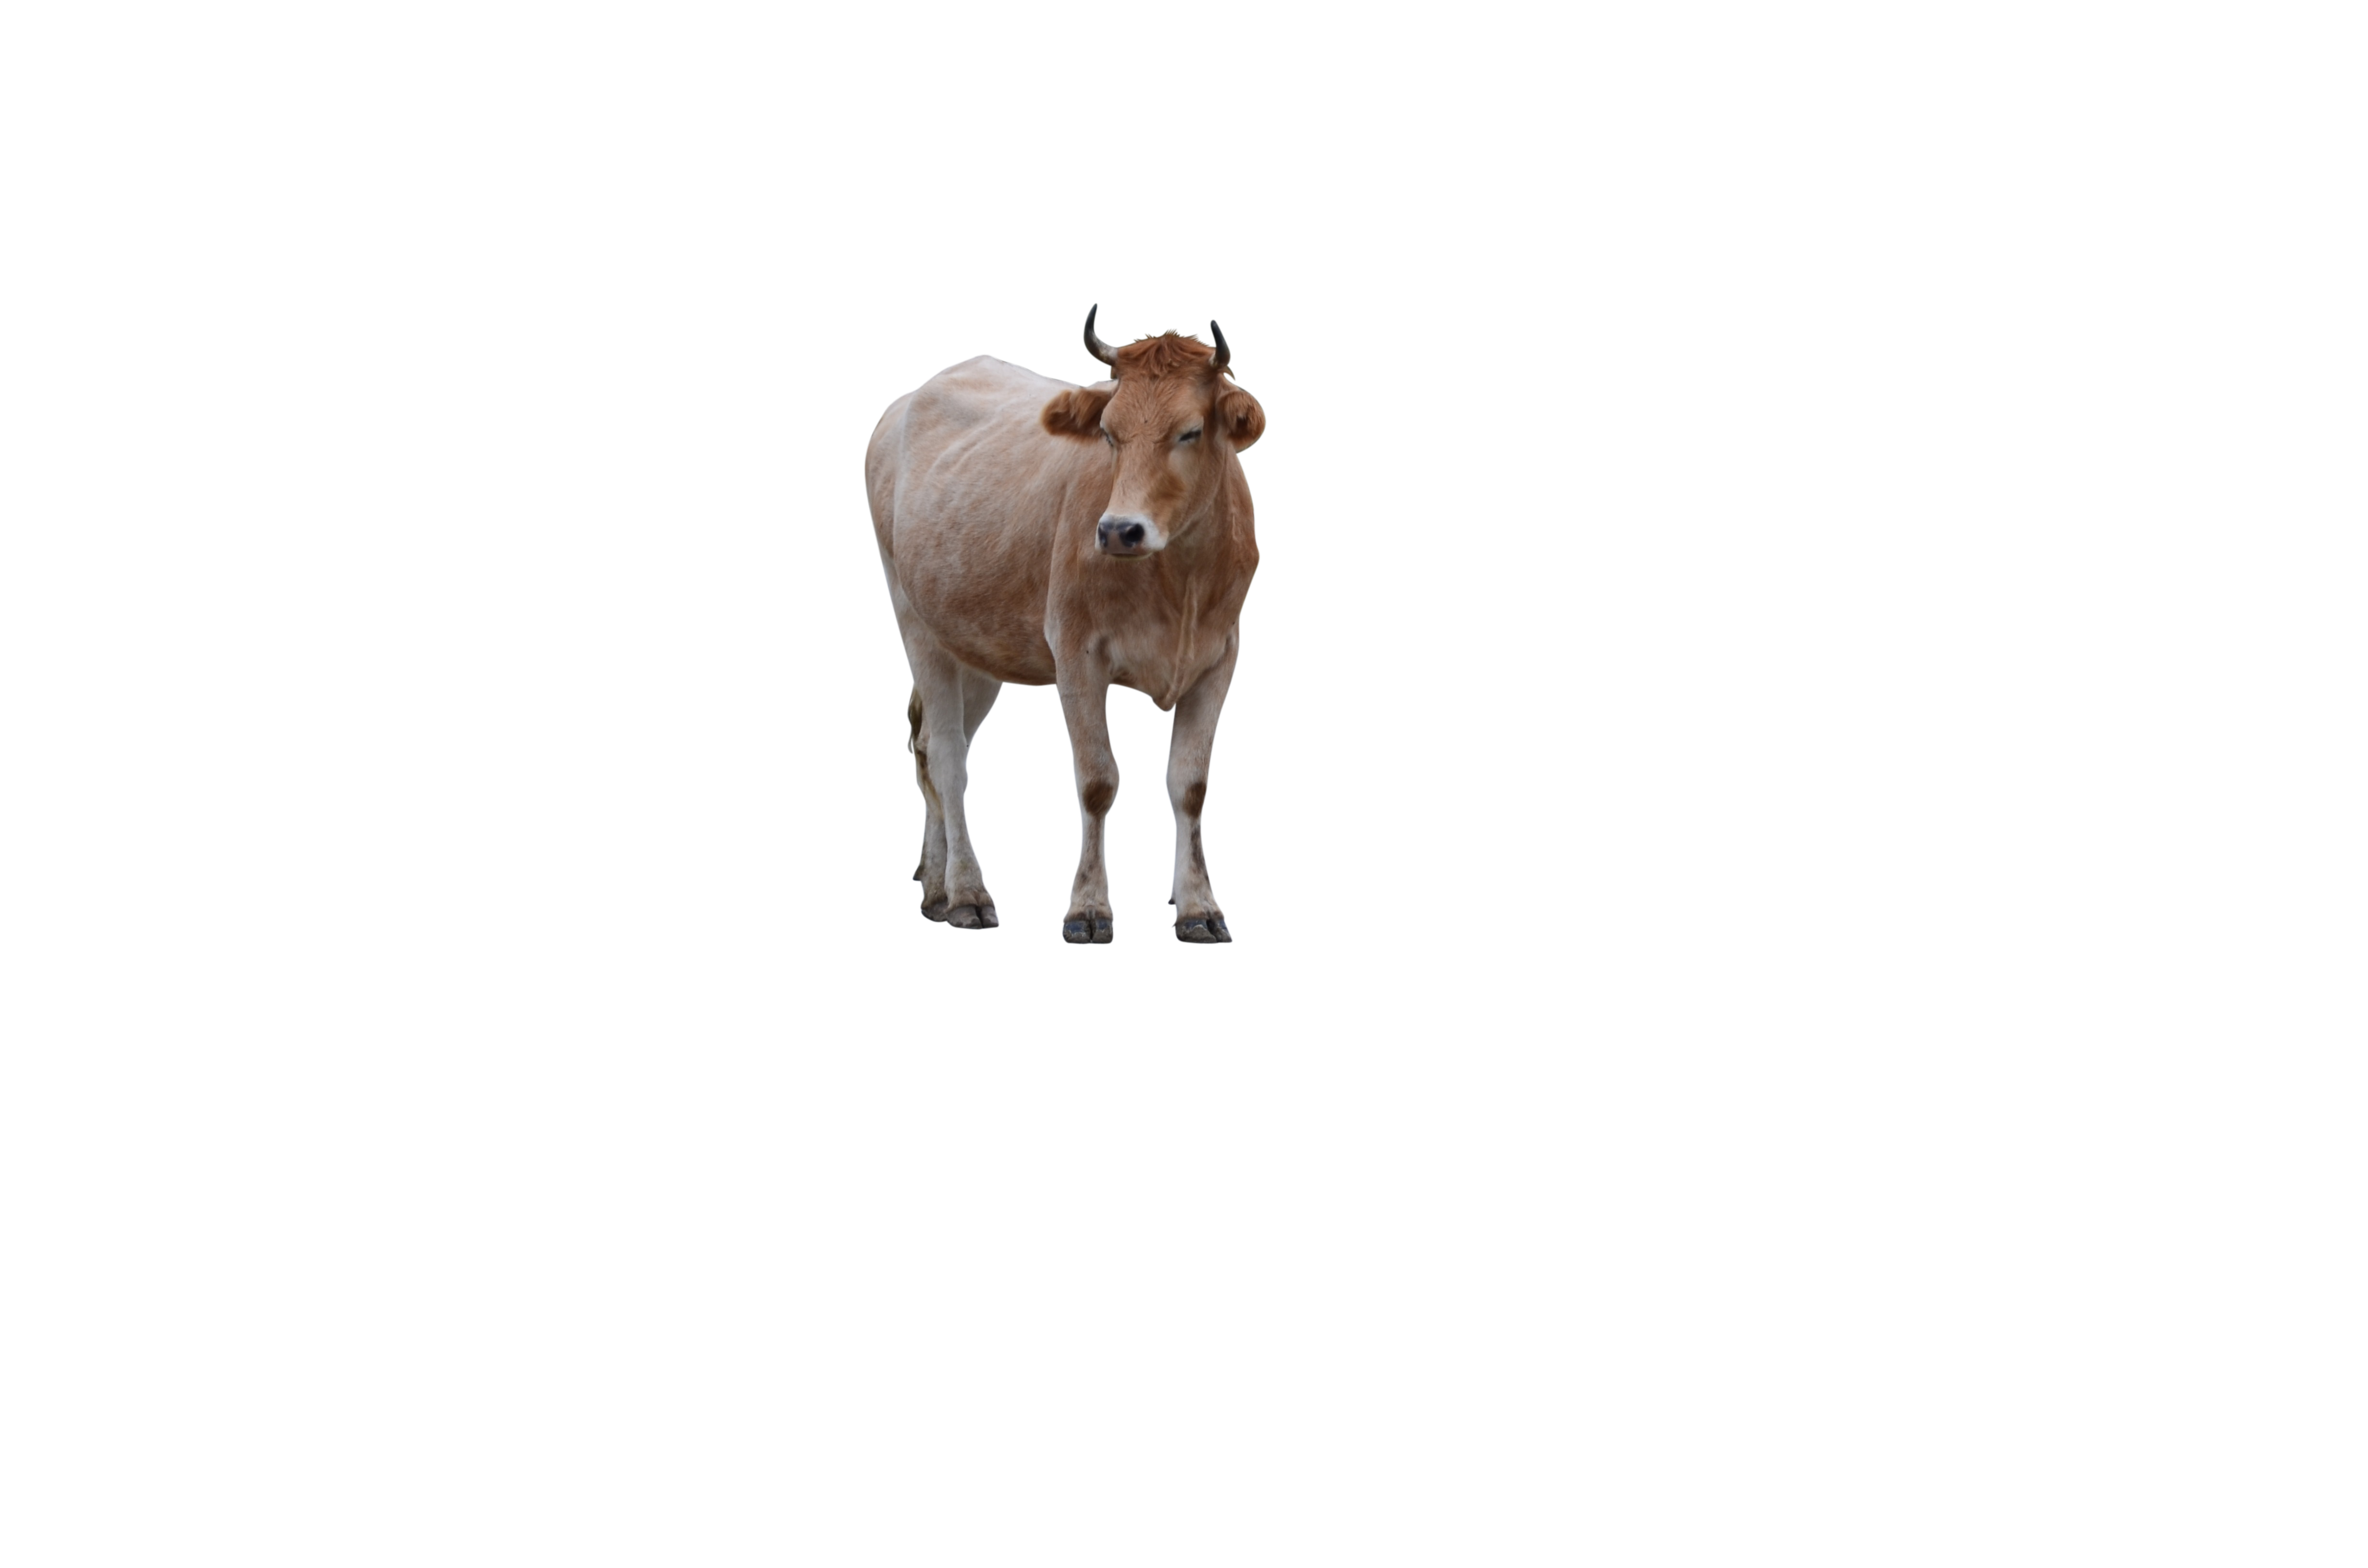 a-cow-on-the-road-985785_Clip